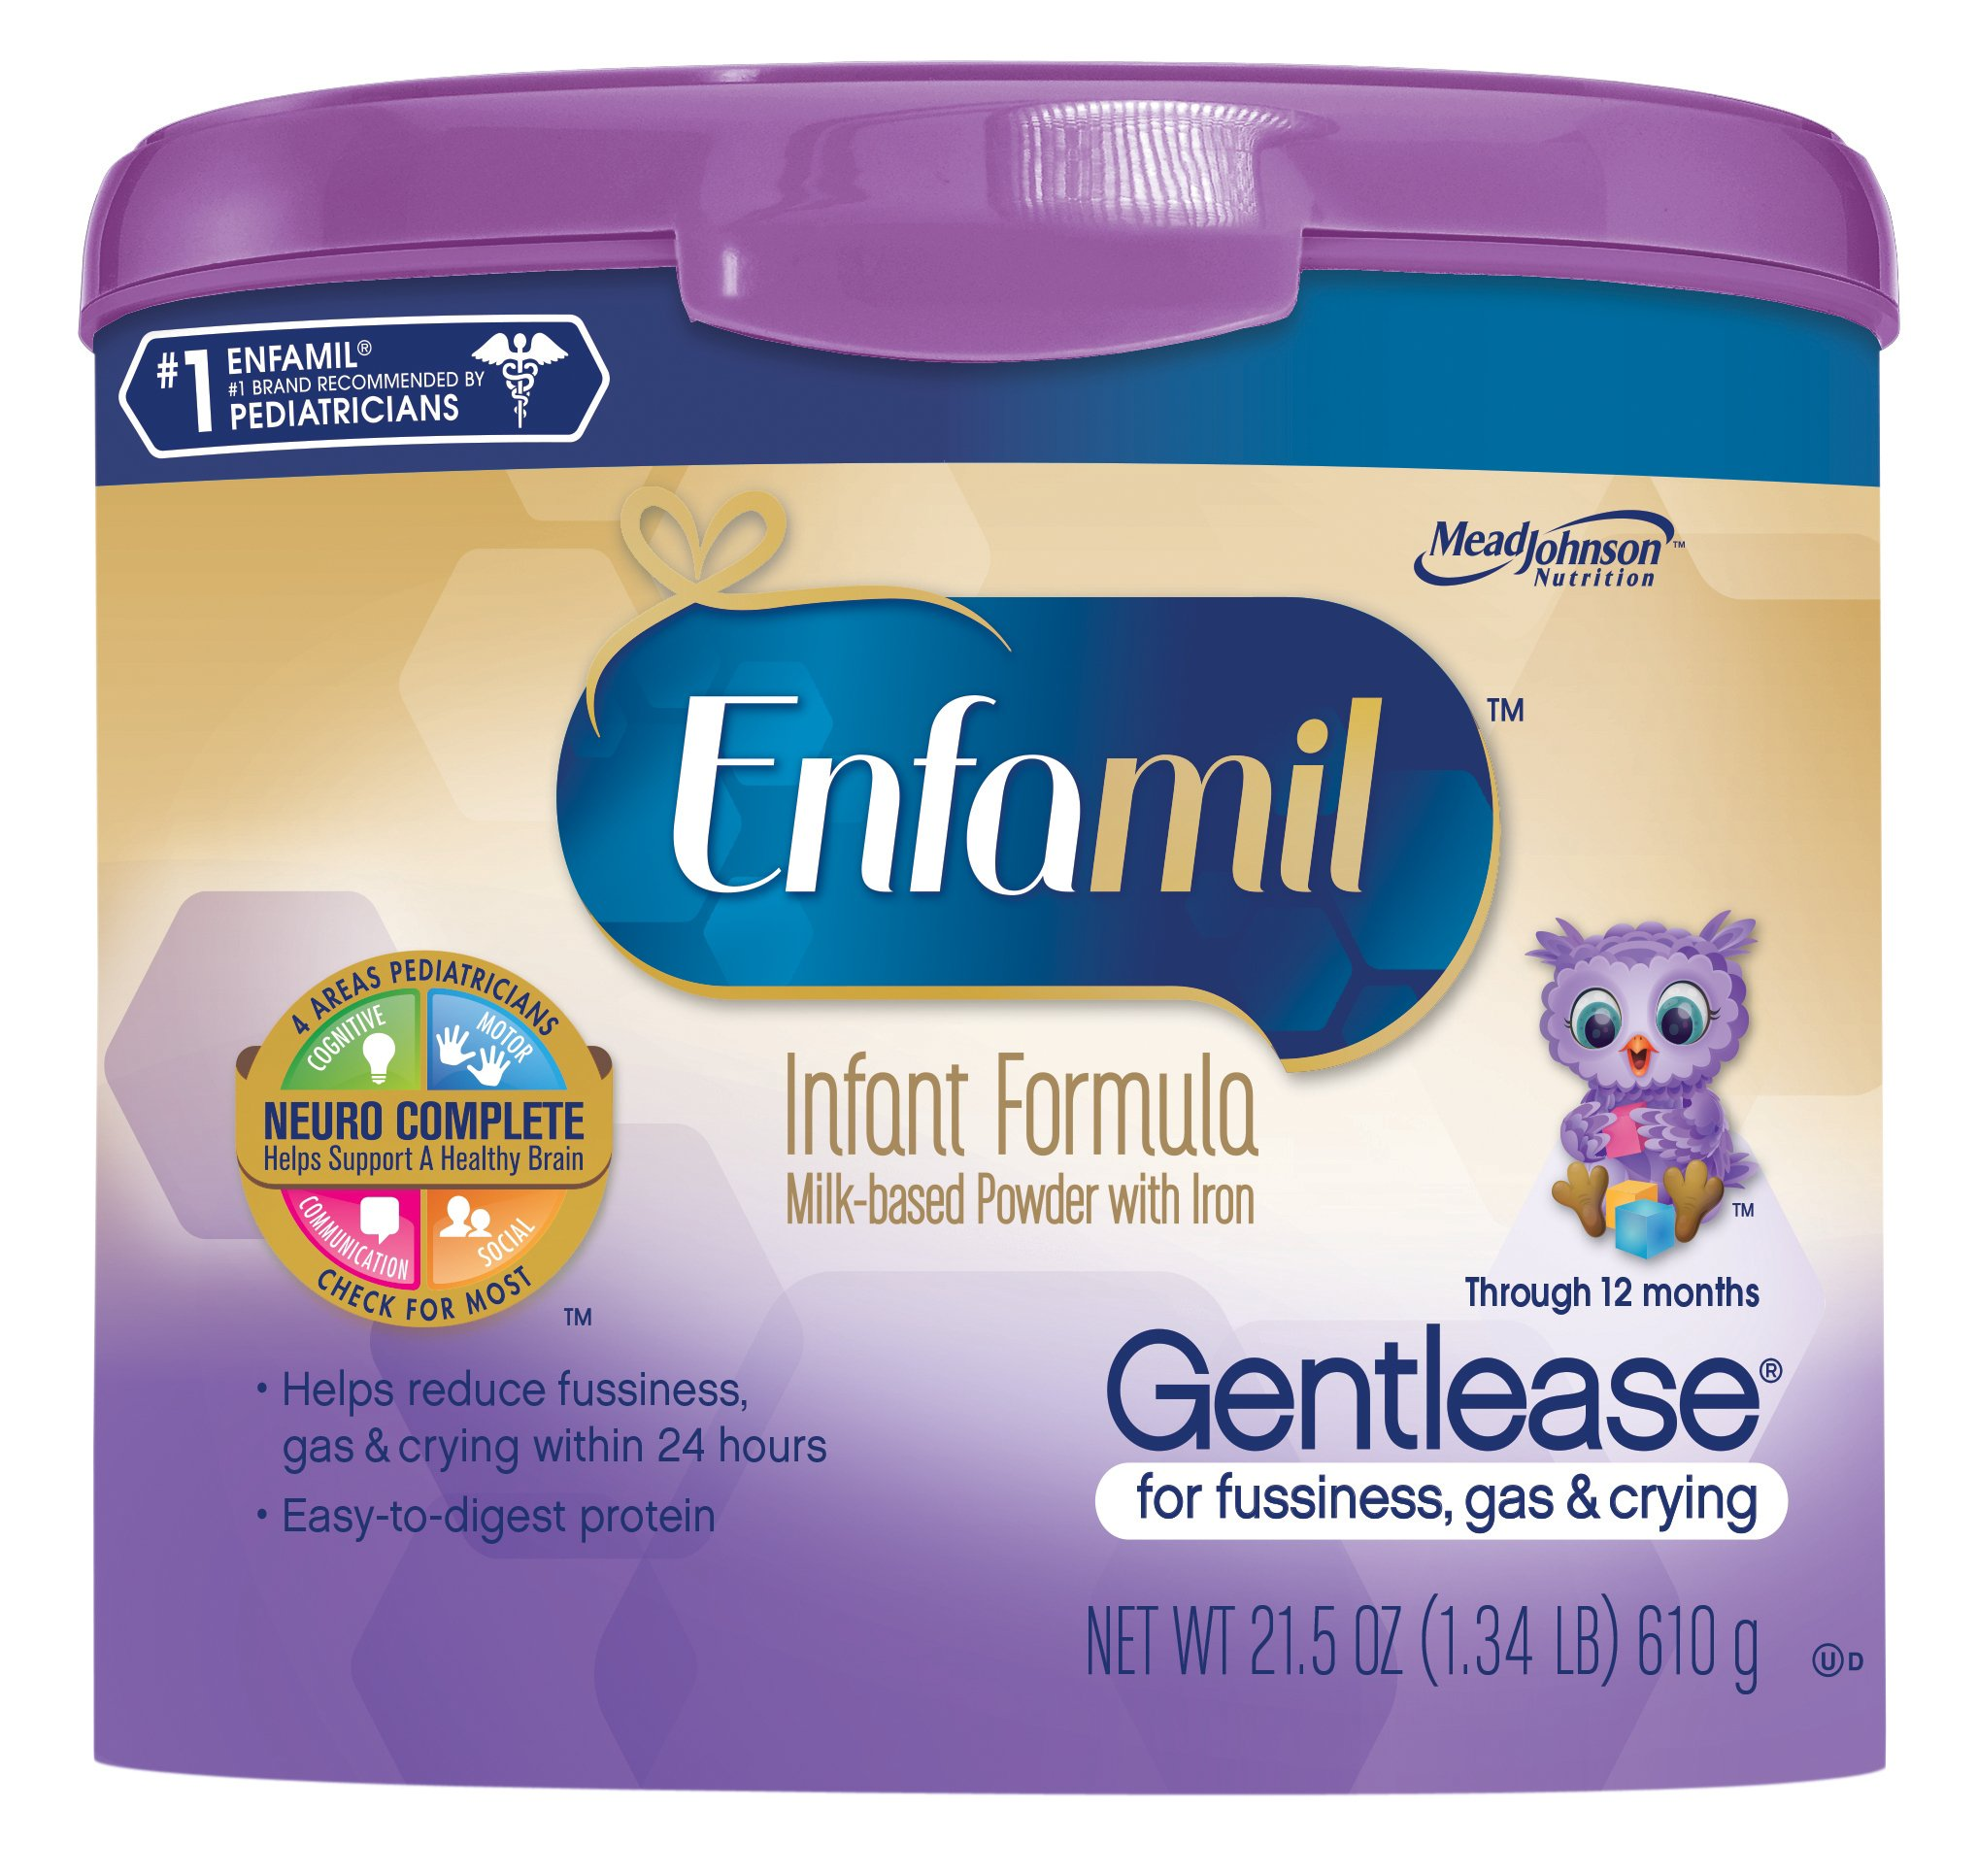 Enfamil Gentlease Infant Formula For Fussiness Gas Crying Powder